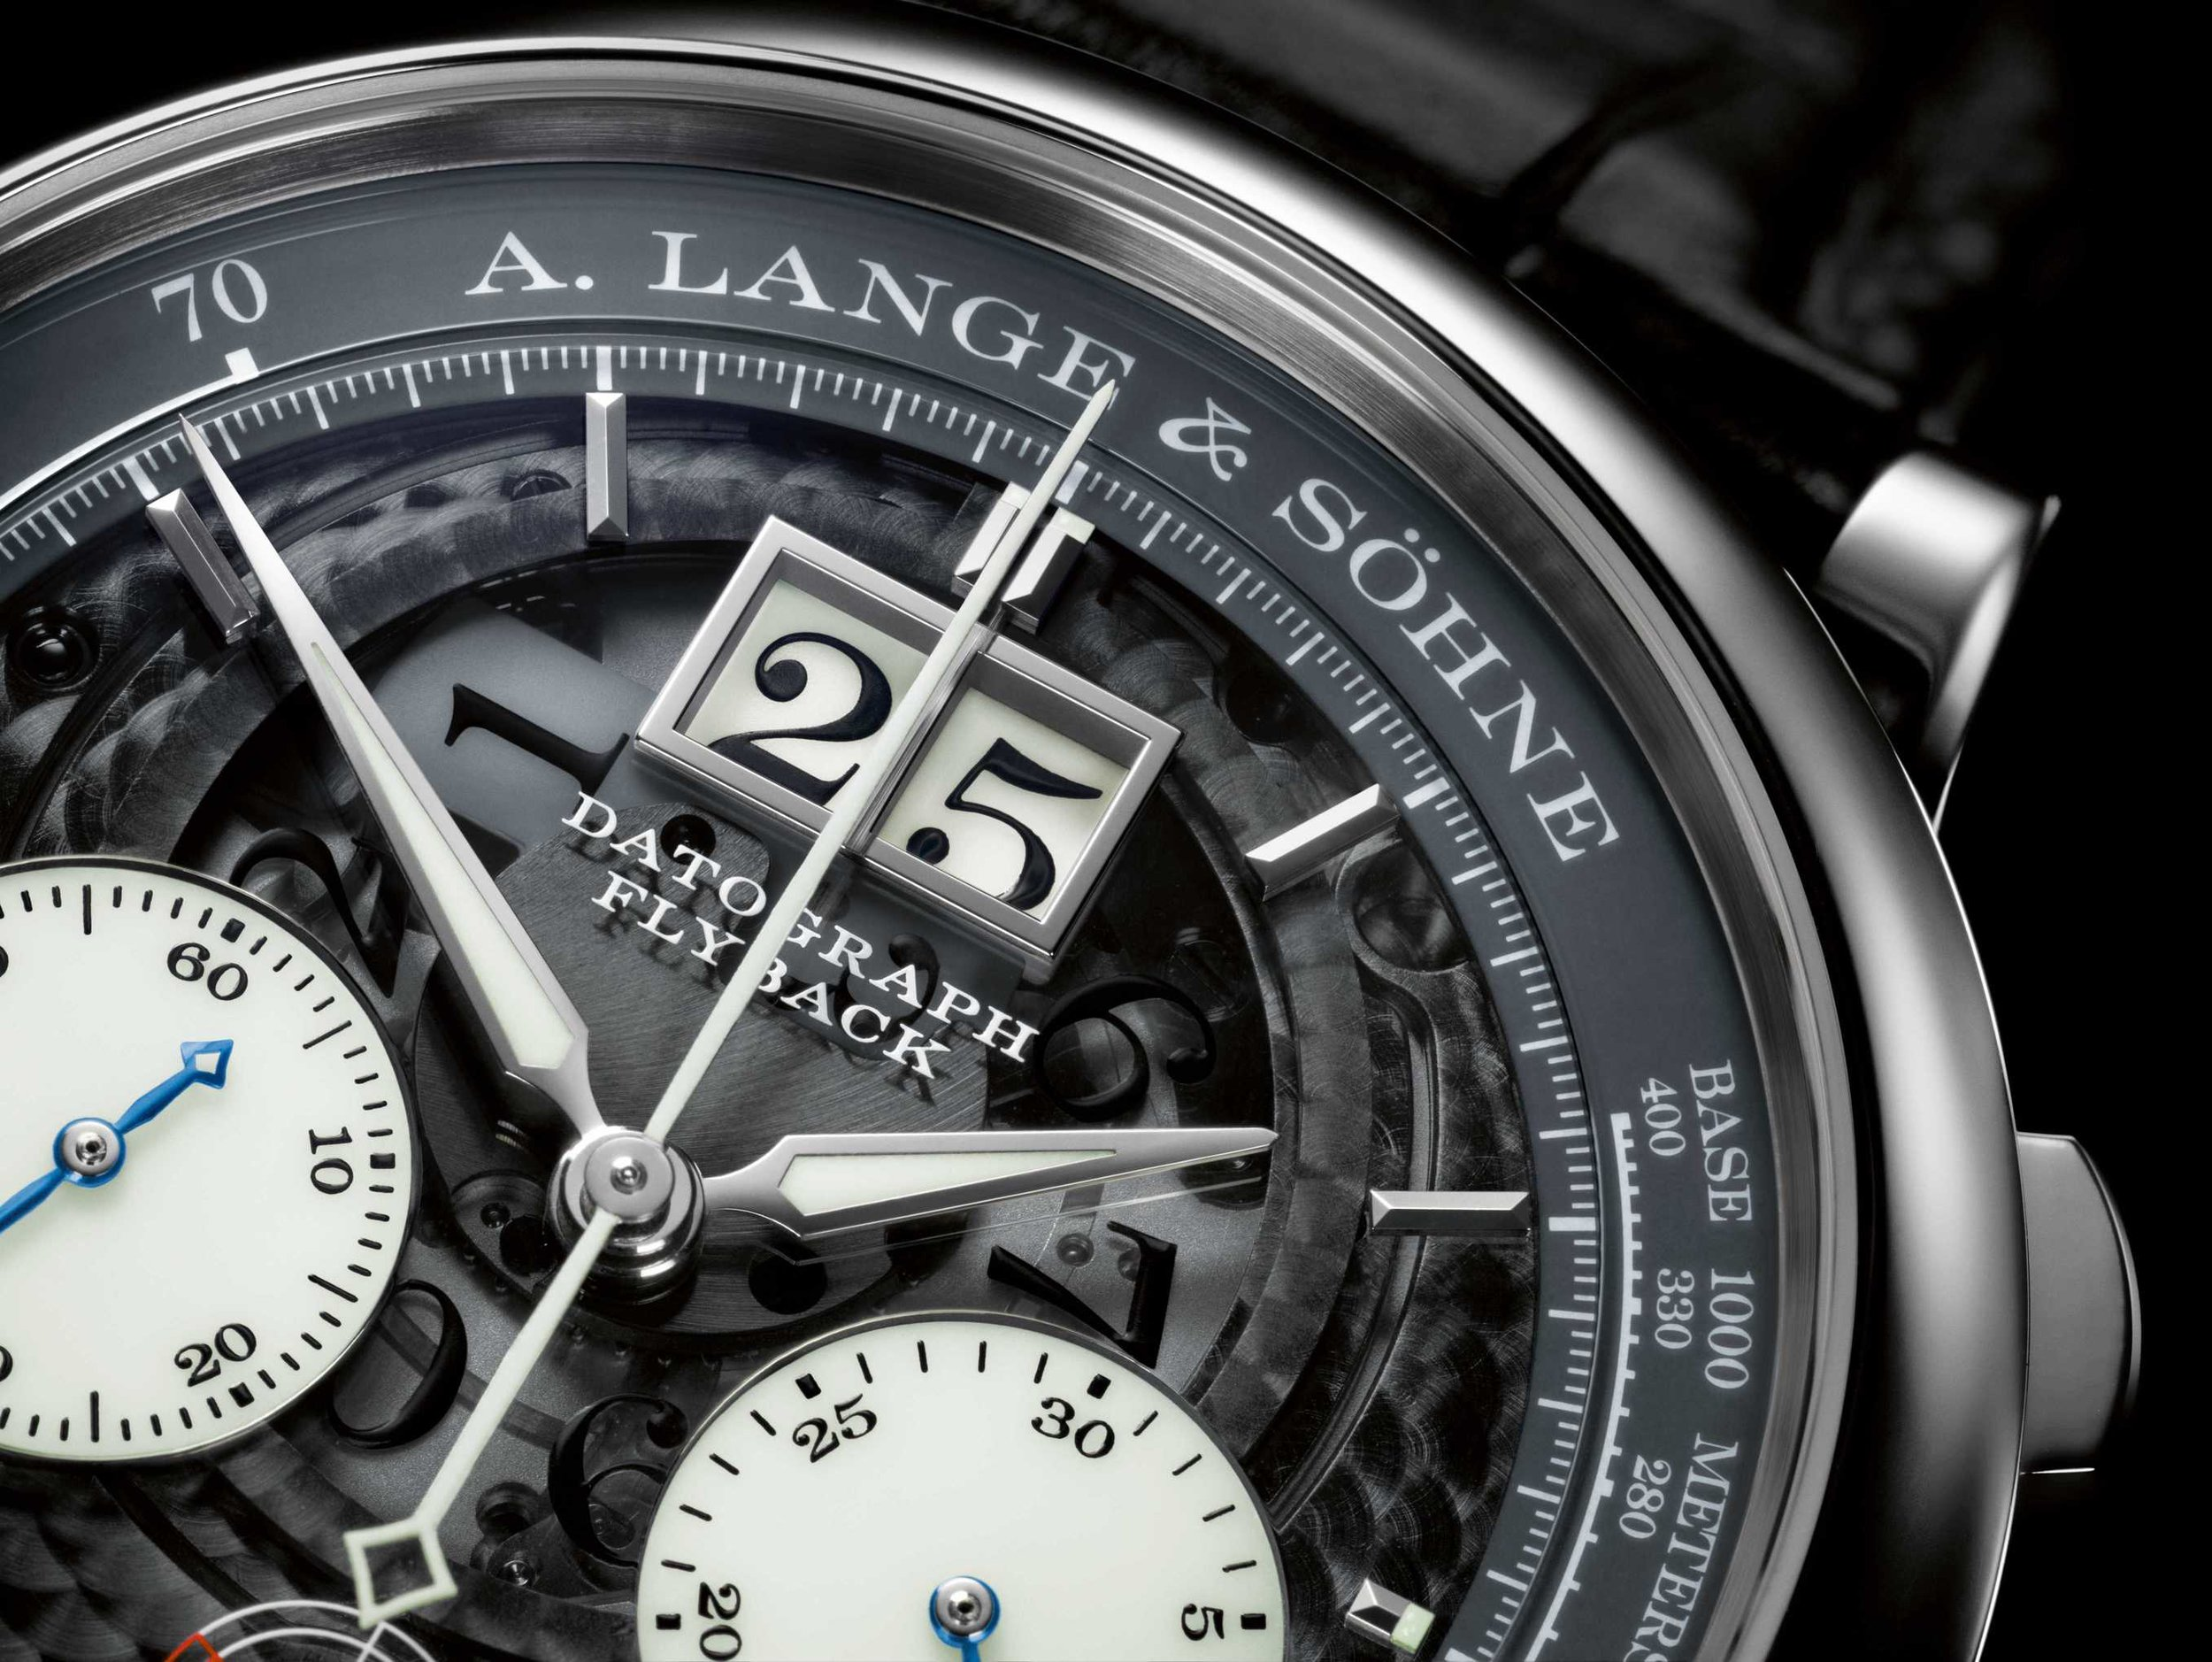 A. Lange Sohne Datograph Up/Down Lumen